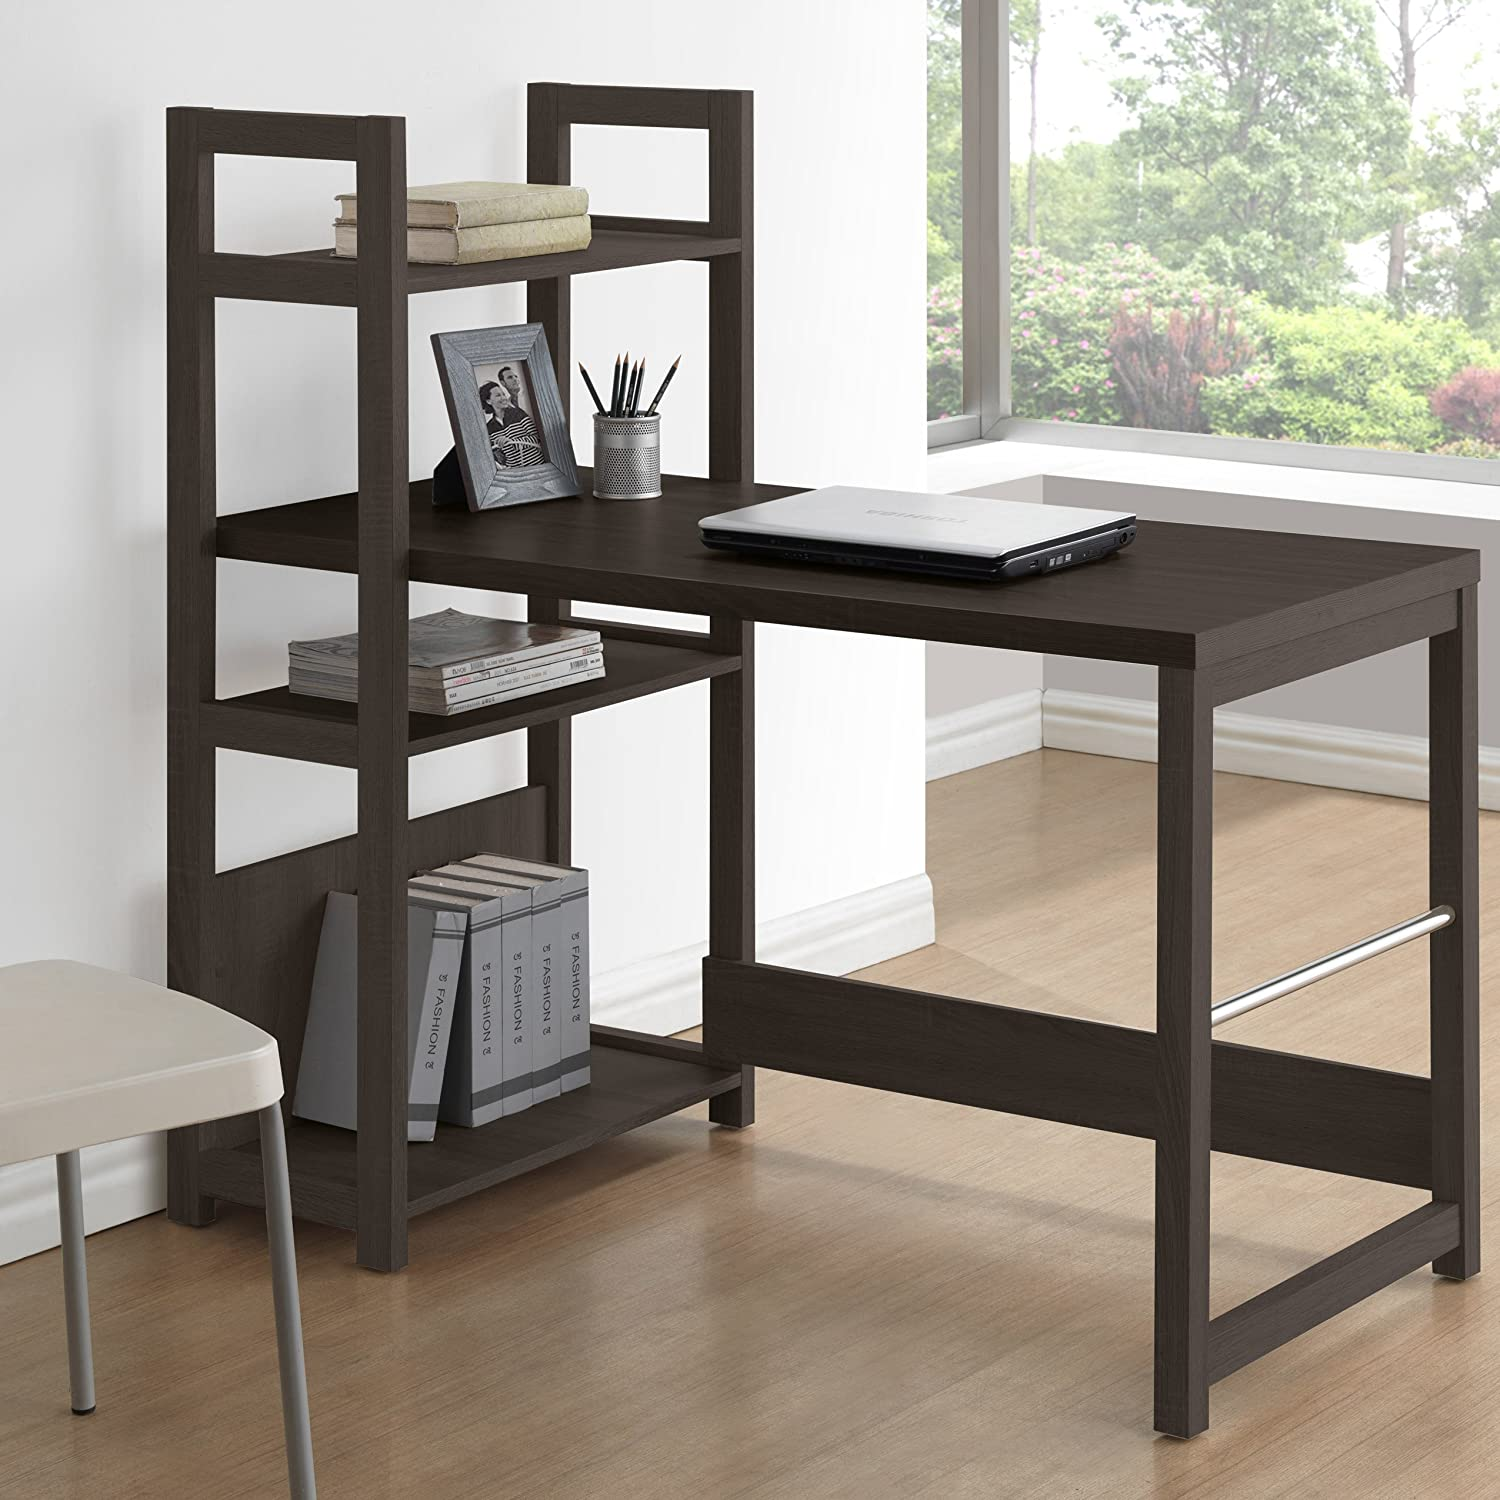 desk ideas dorm computer custom college bookshelf diy hutch simple with